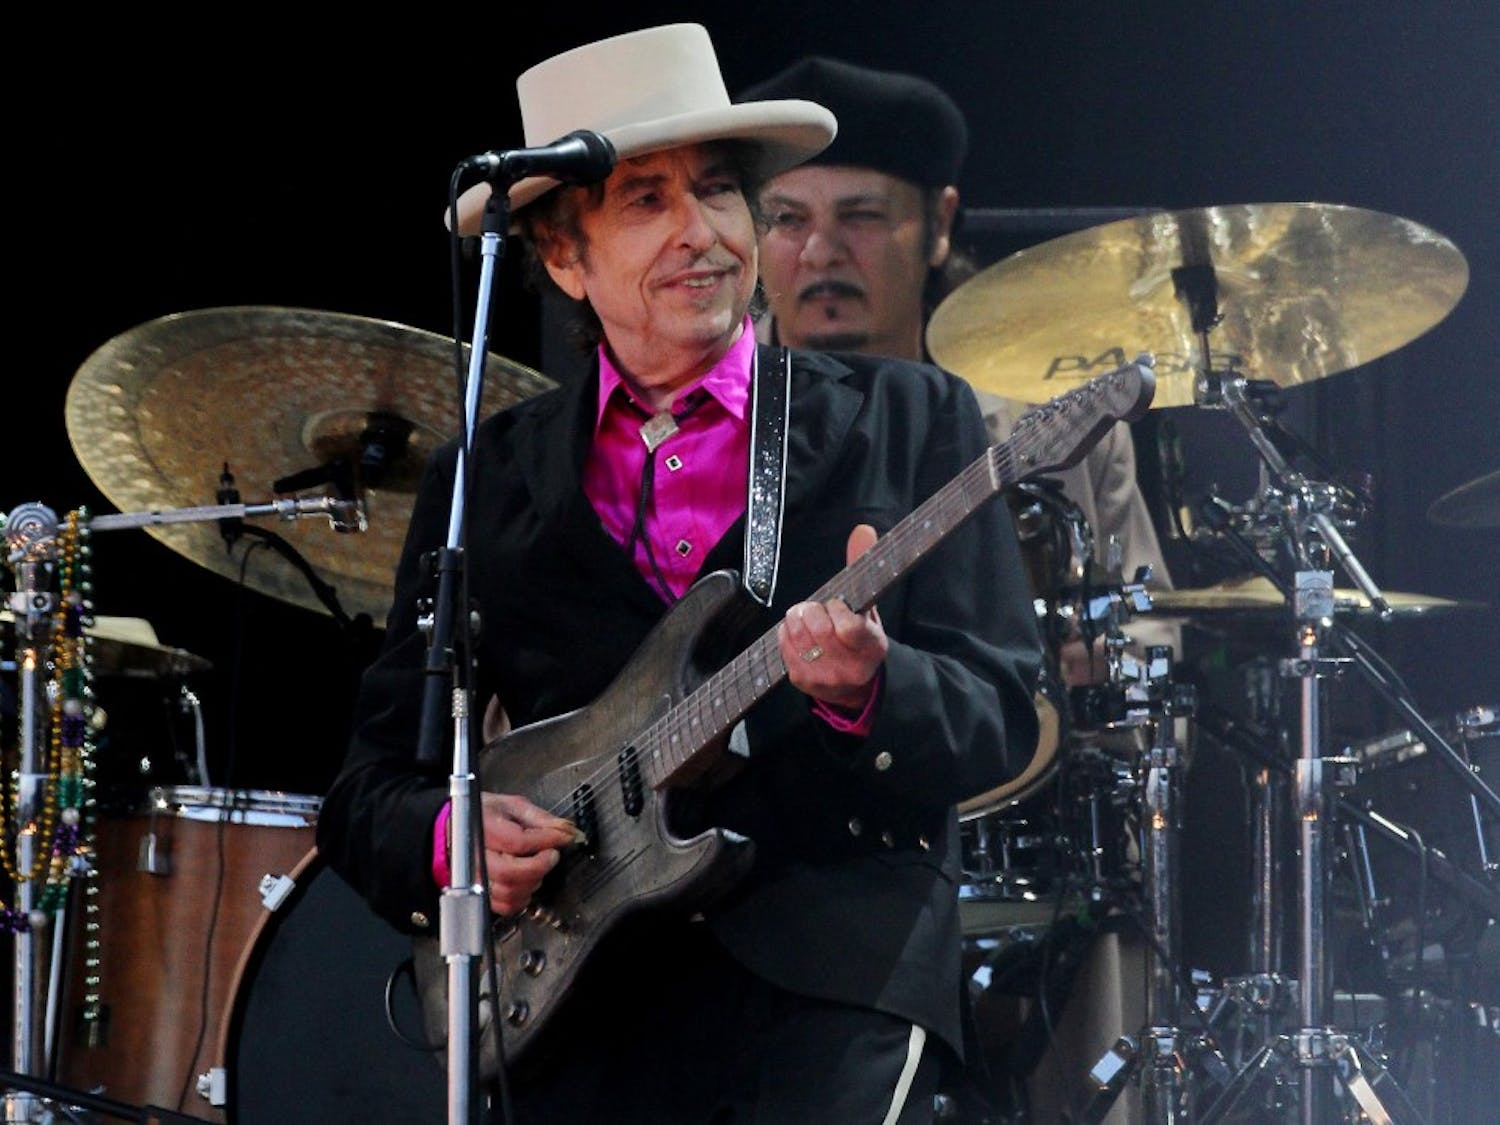 """File photo dated 3/7/2010 of American singer Bob Dylan, who has been hailed as """"a great poet in the English-speaking tradition"""" following his surprise win of the Nobel Prize in Literature. (Gareth Fuller/PA Wire/Zuma Press/TNS)"""